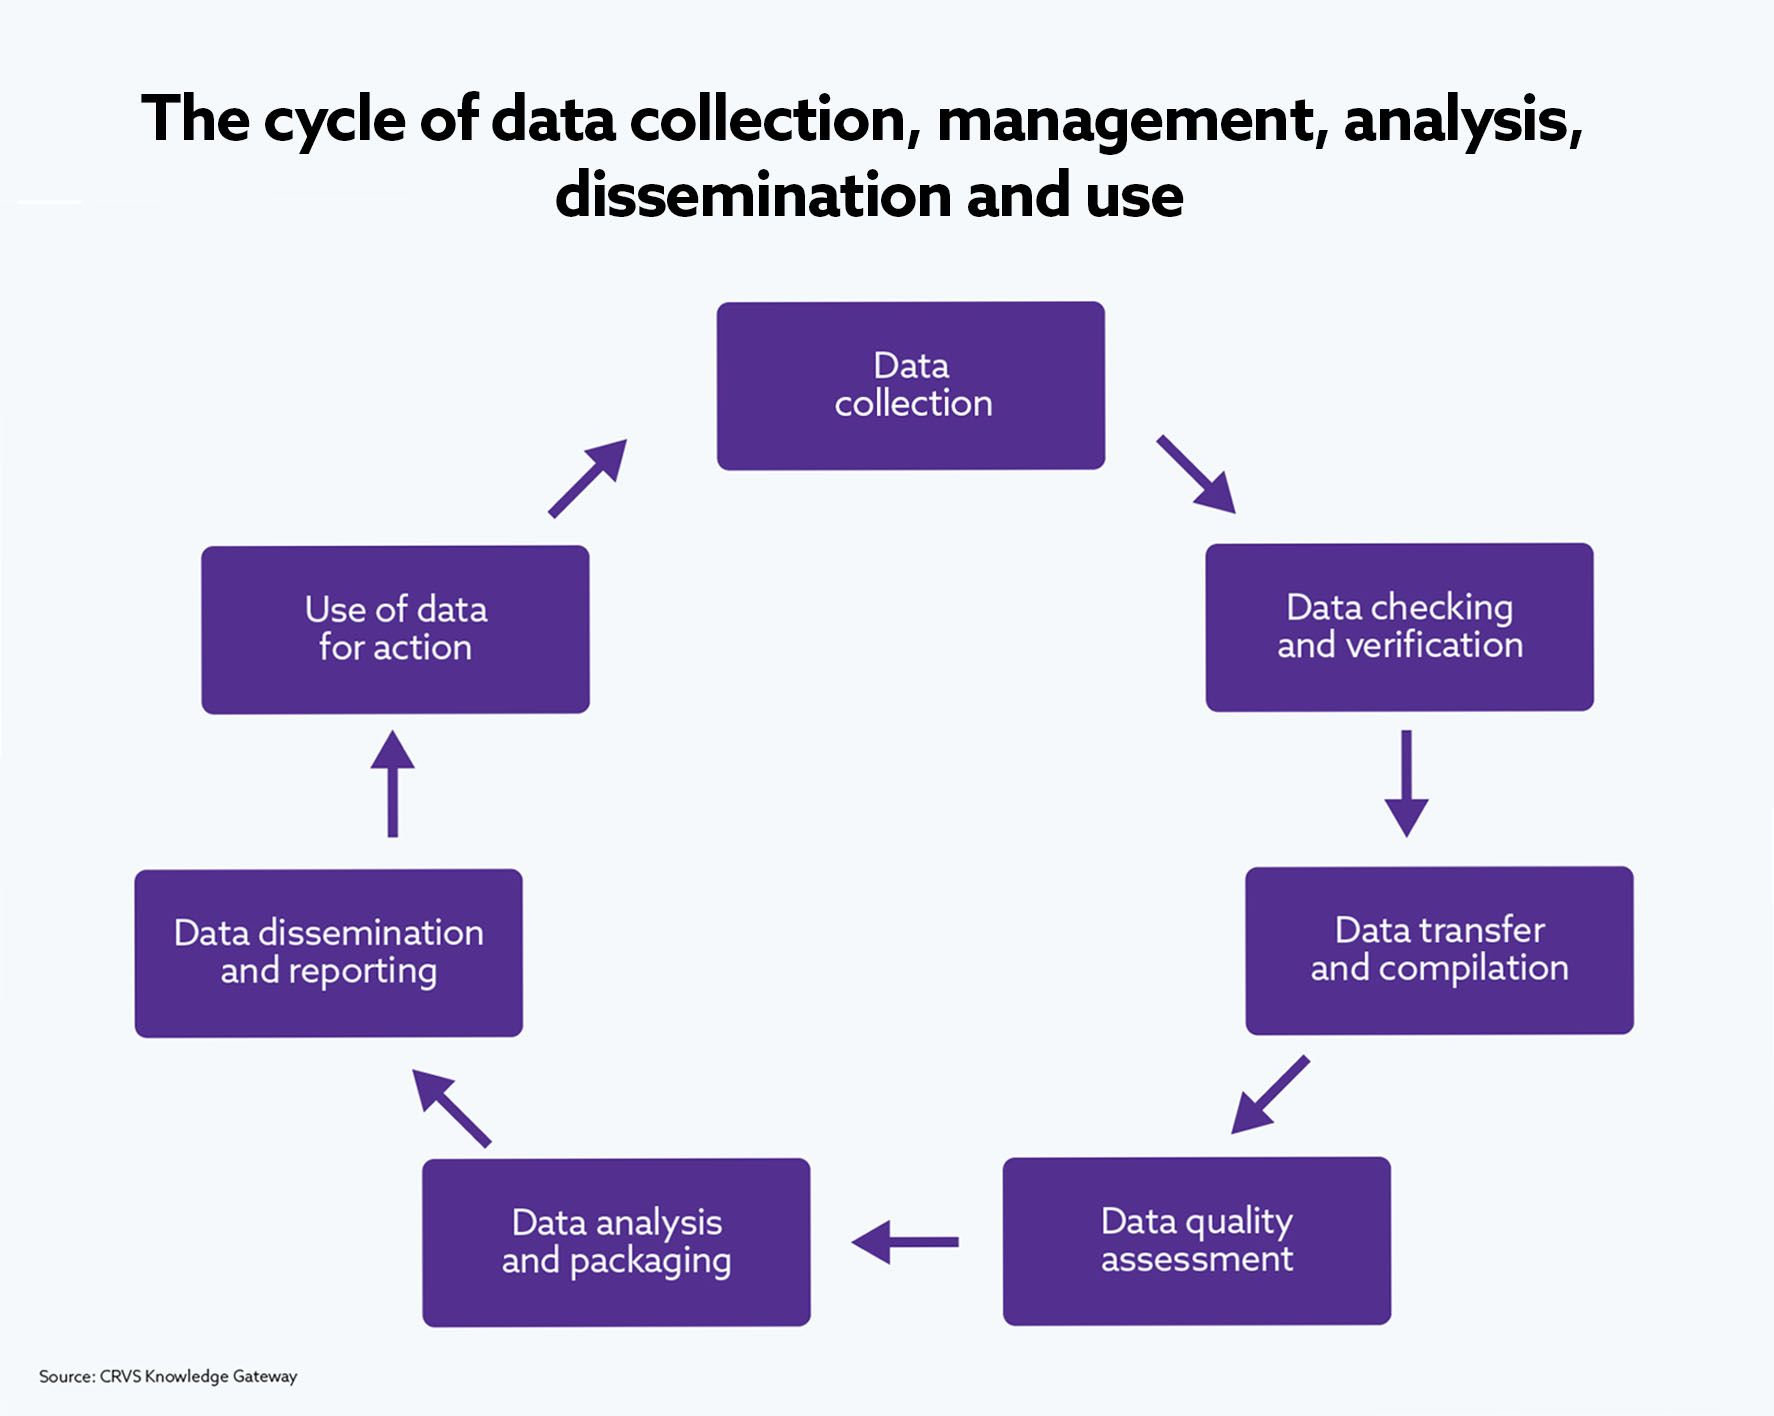 The cycle of data collection, management, analysis, dissemination and use